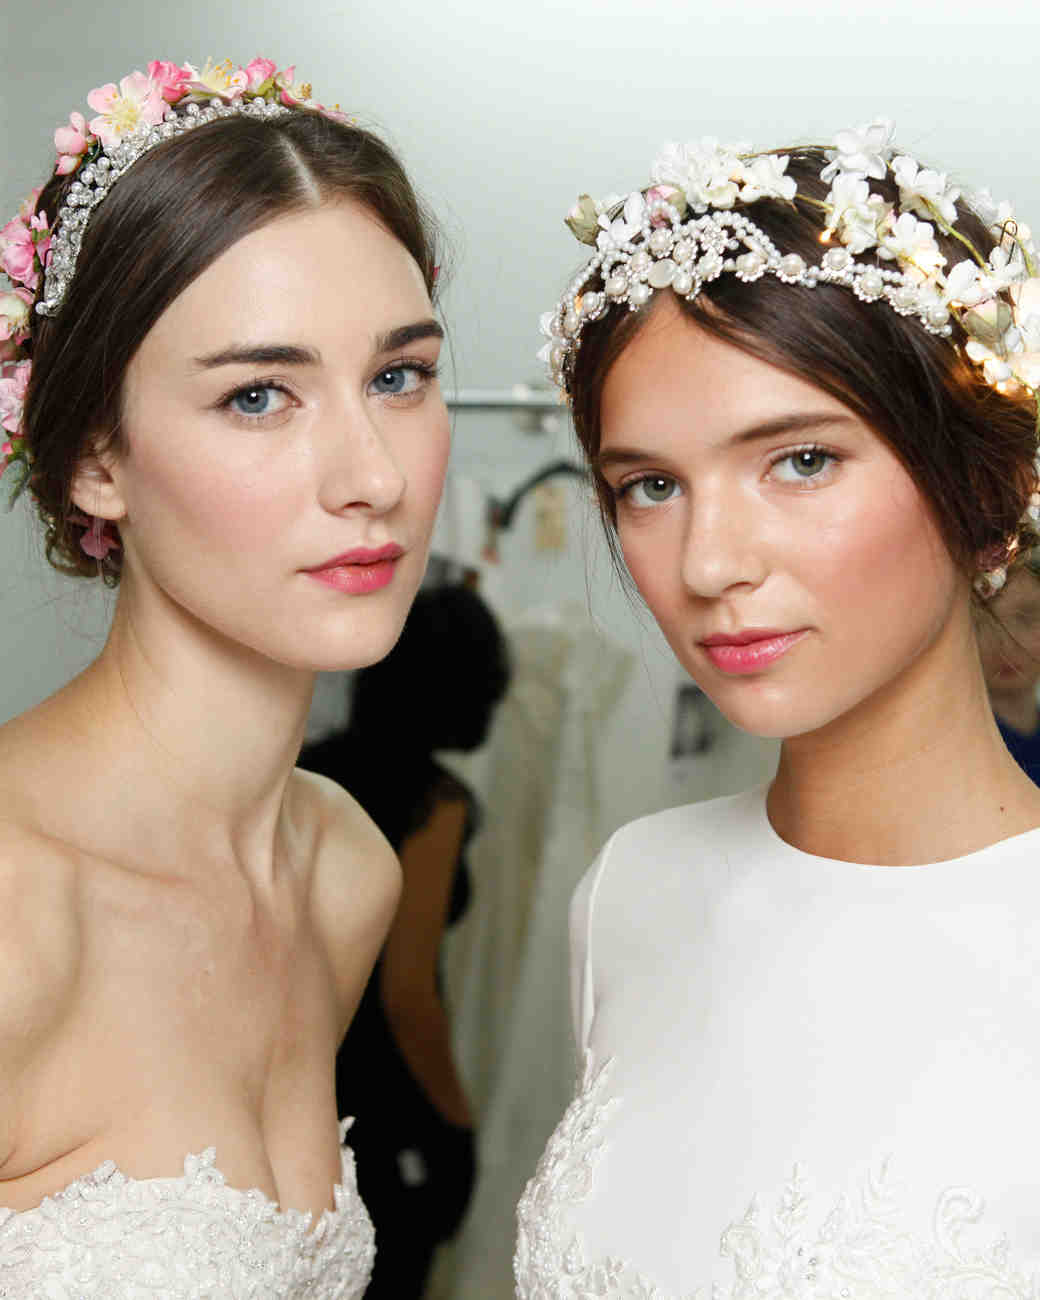 2015 Wedding Hairstyles: 4 Flower-Filled Wedding Hairstyles From The Bridal Shows